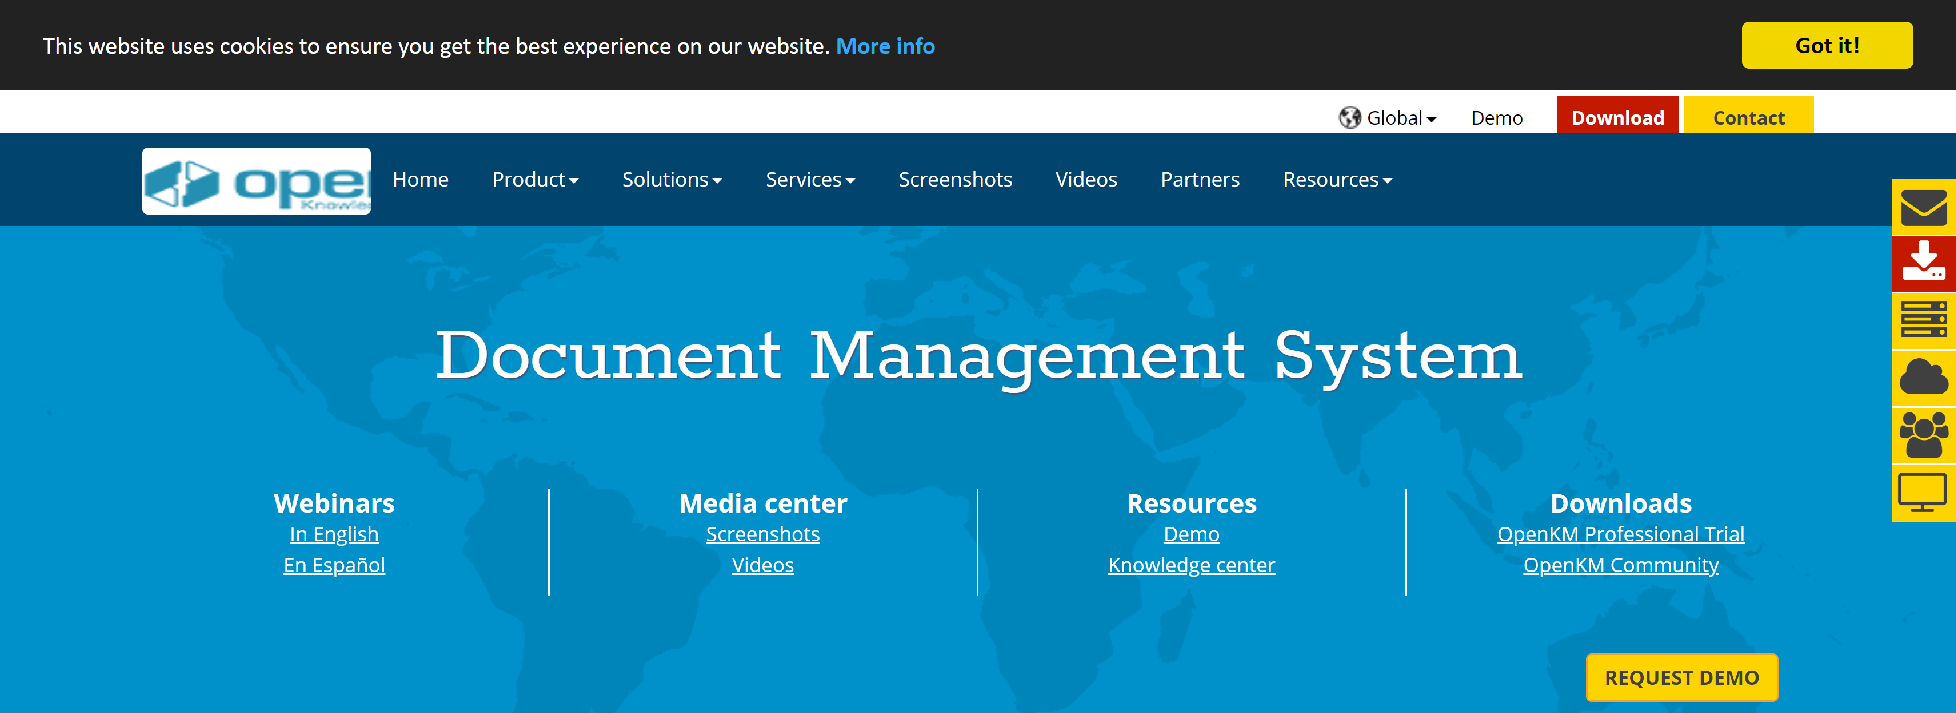 Top 11 Document Management Software Systems Small To Medium Size Business 2020 Cllax Top Of It